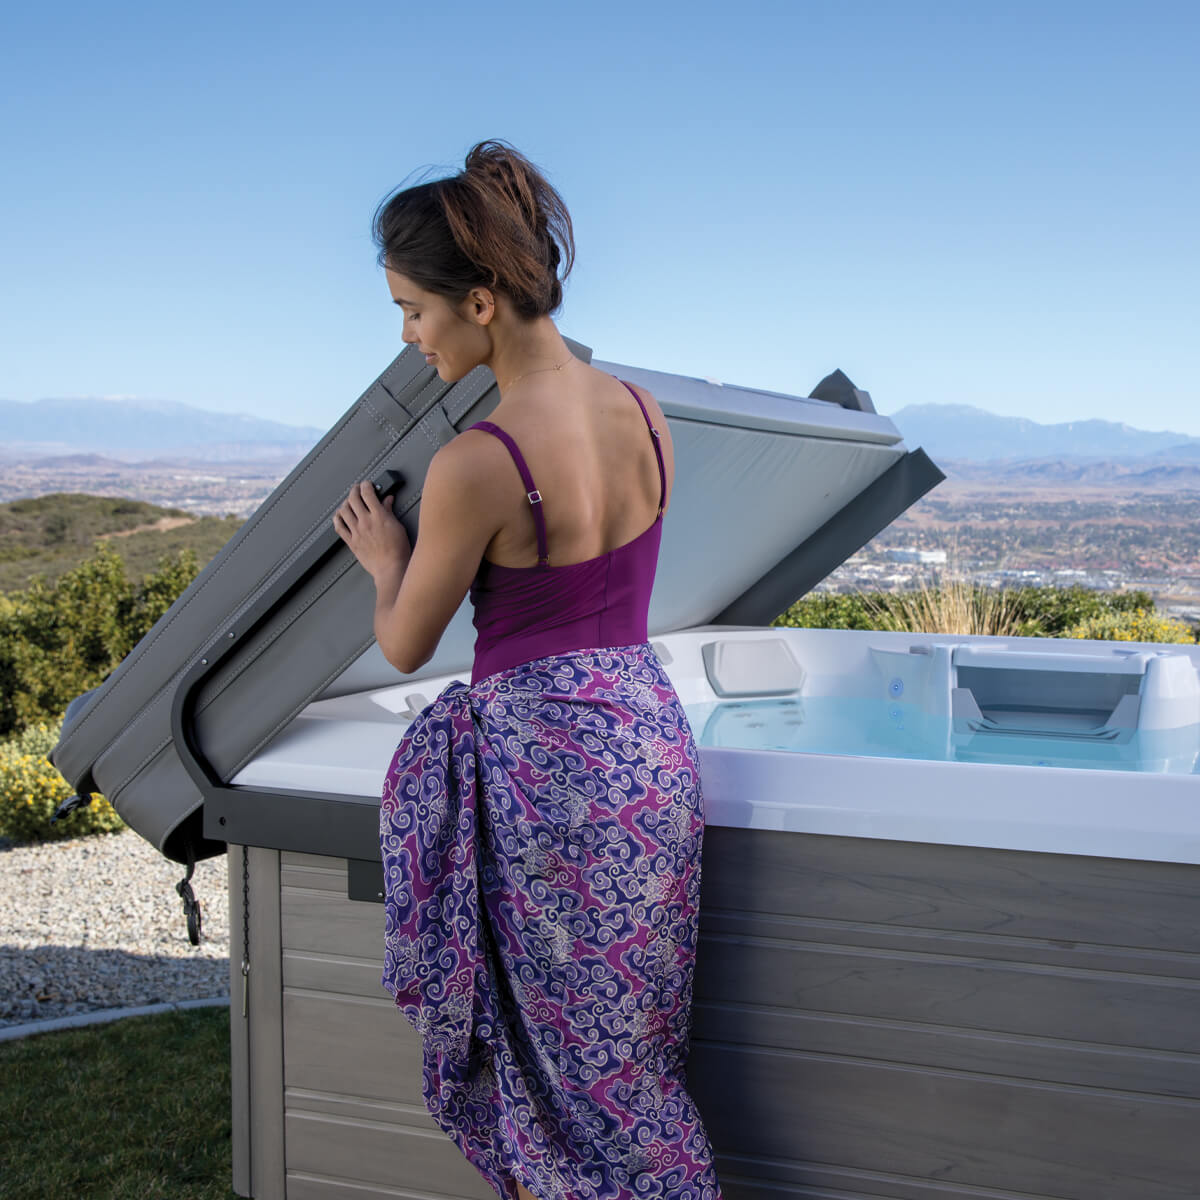 Had to cancel a vacation? A hot tub might be the perfect staycation/health-cation!